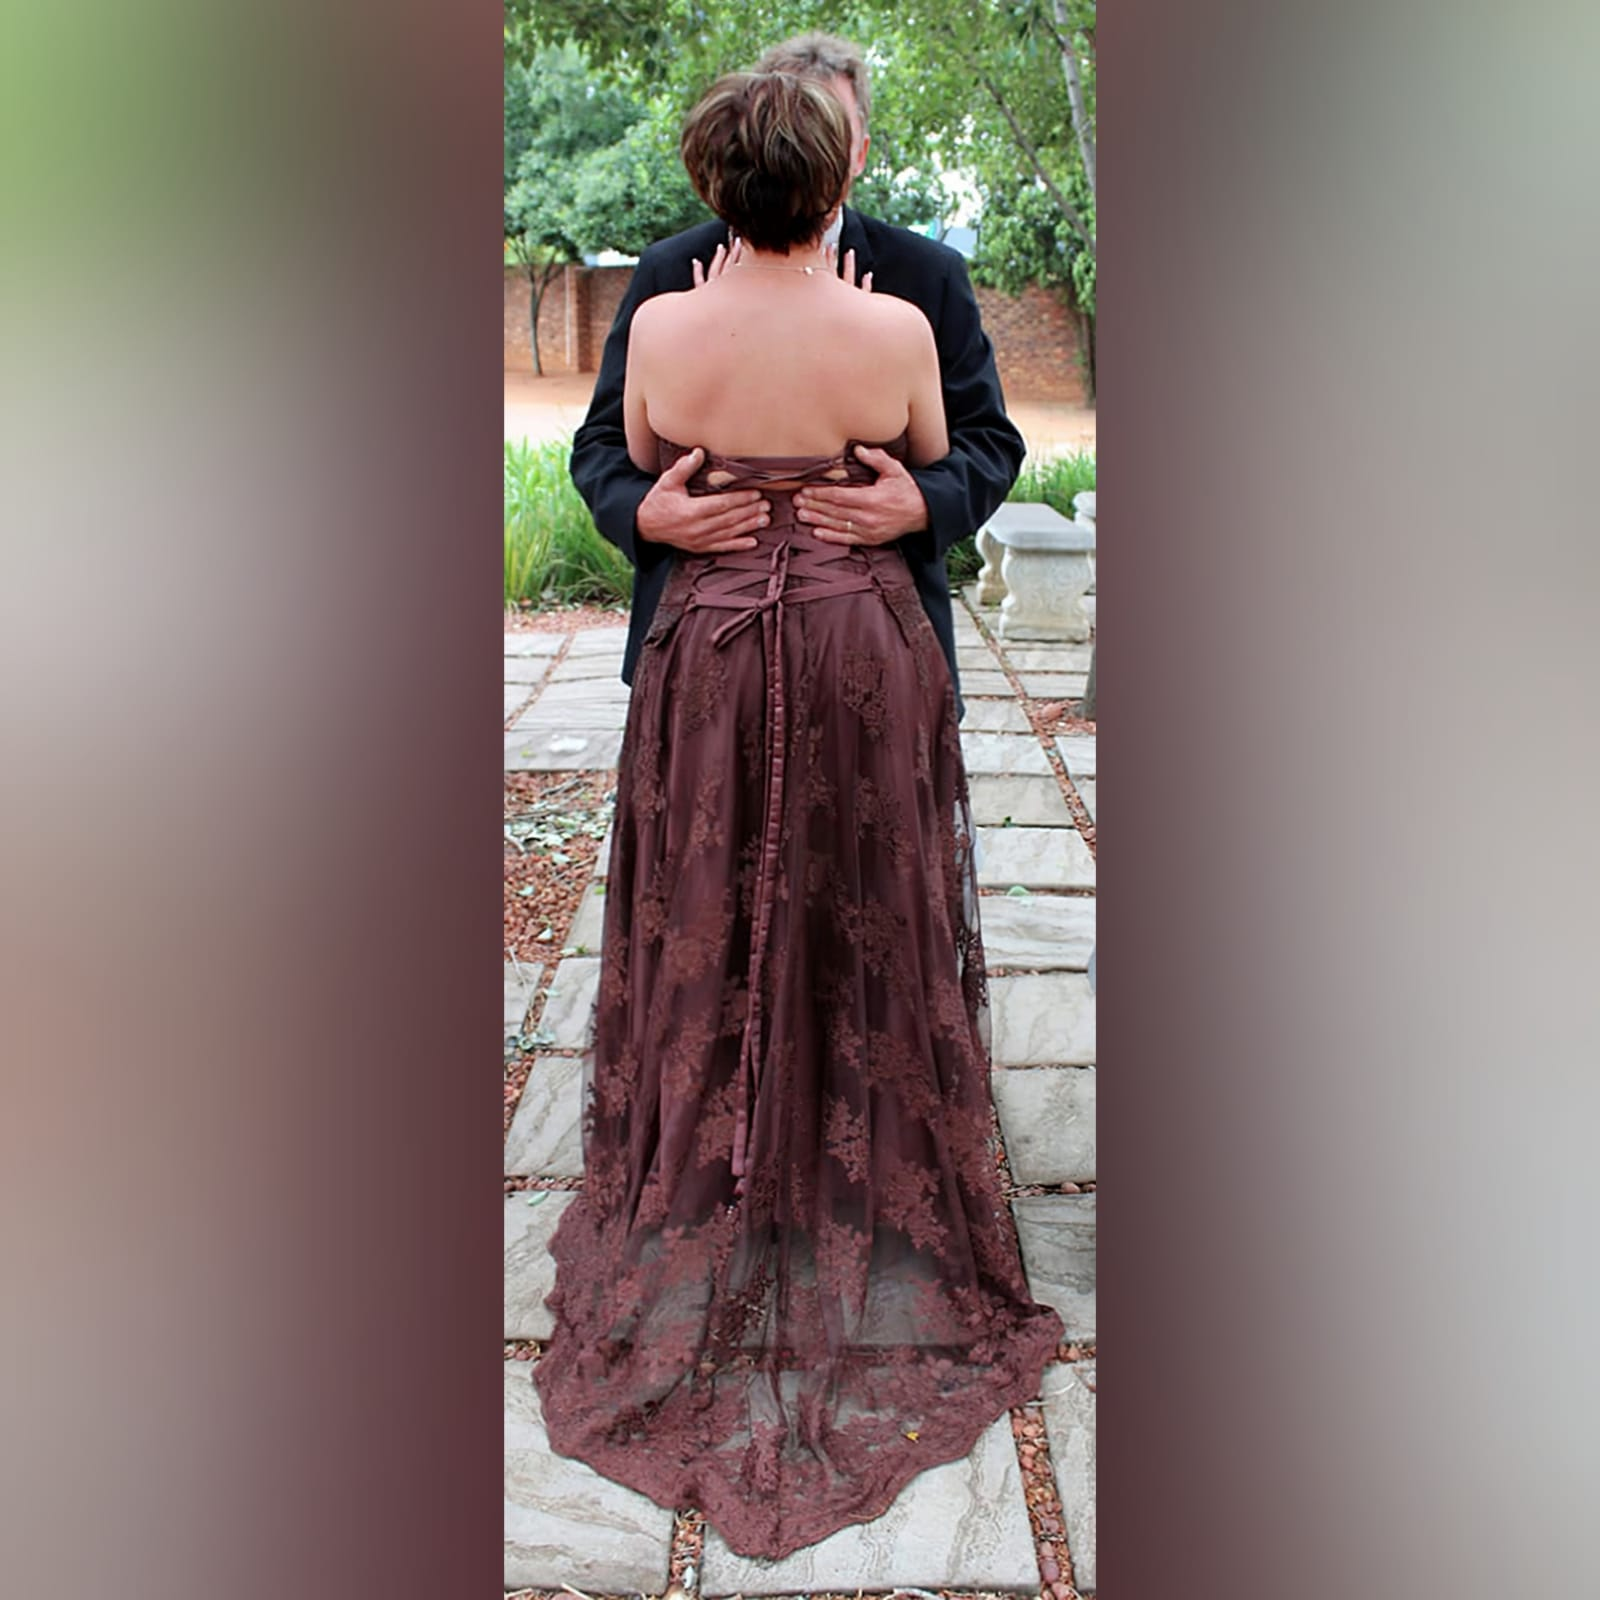 Brown 2 piece lace wedding dress 4 brown 2 piece lace wedding dress. With a flowy skirt, with train. Boob tube corset top with a lace up back.